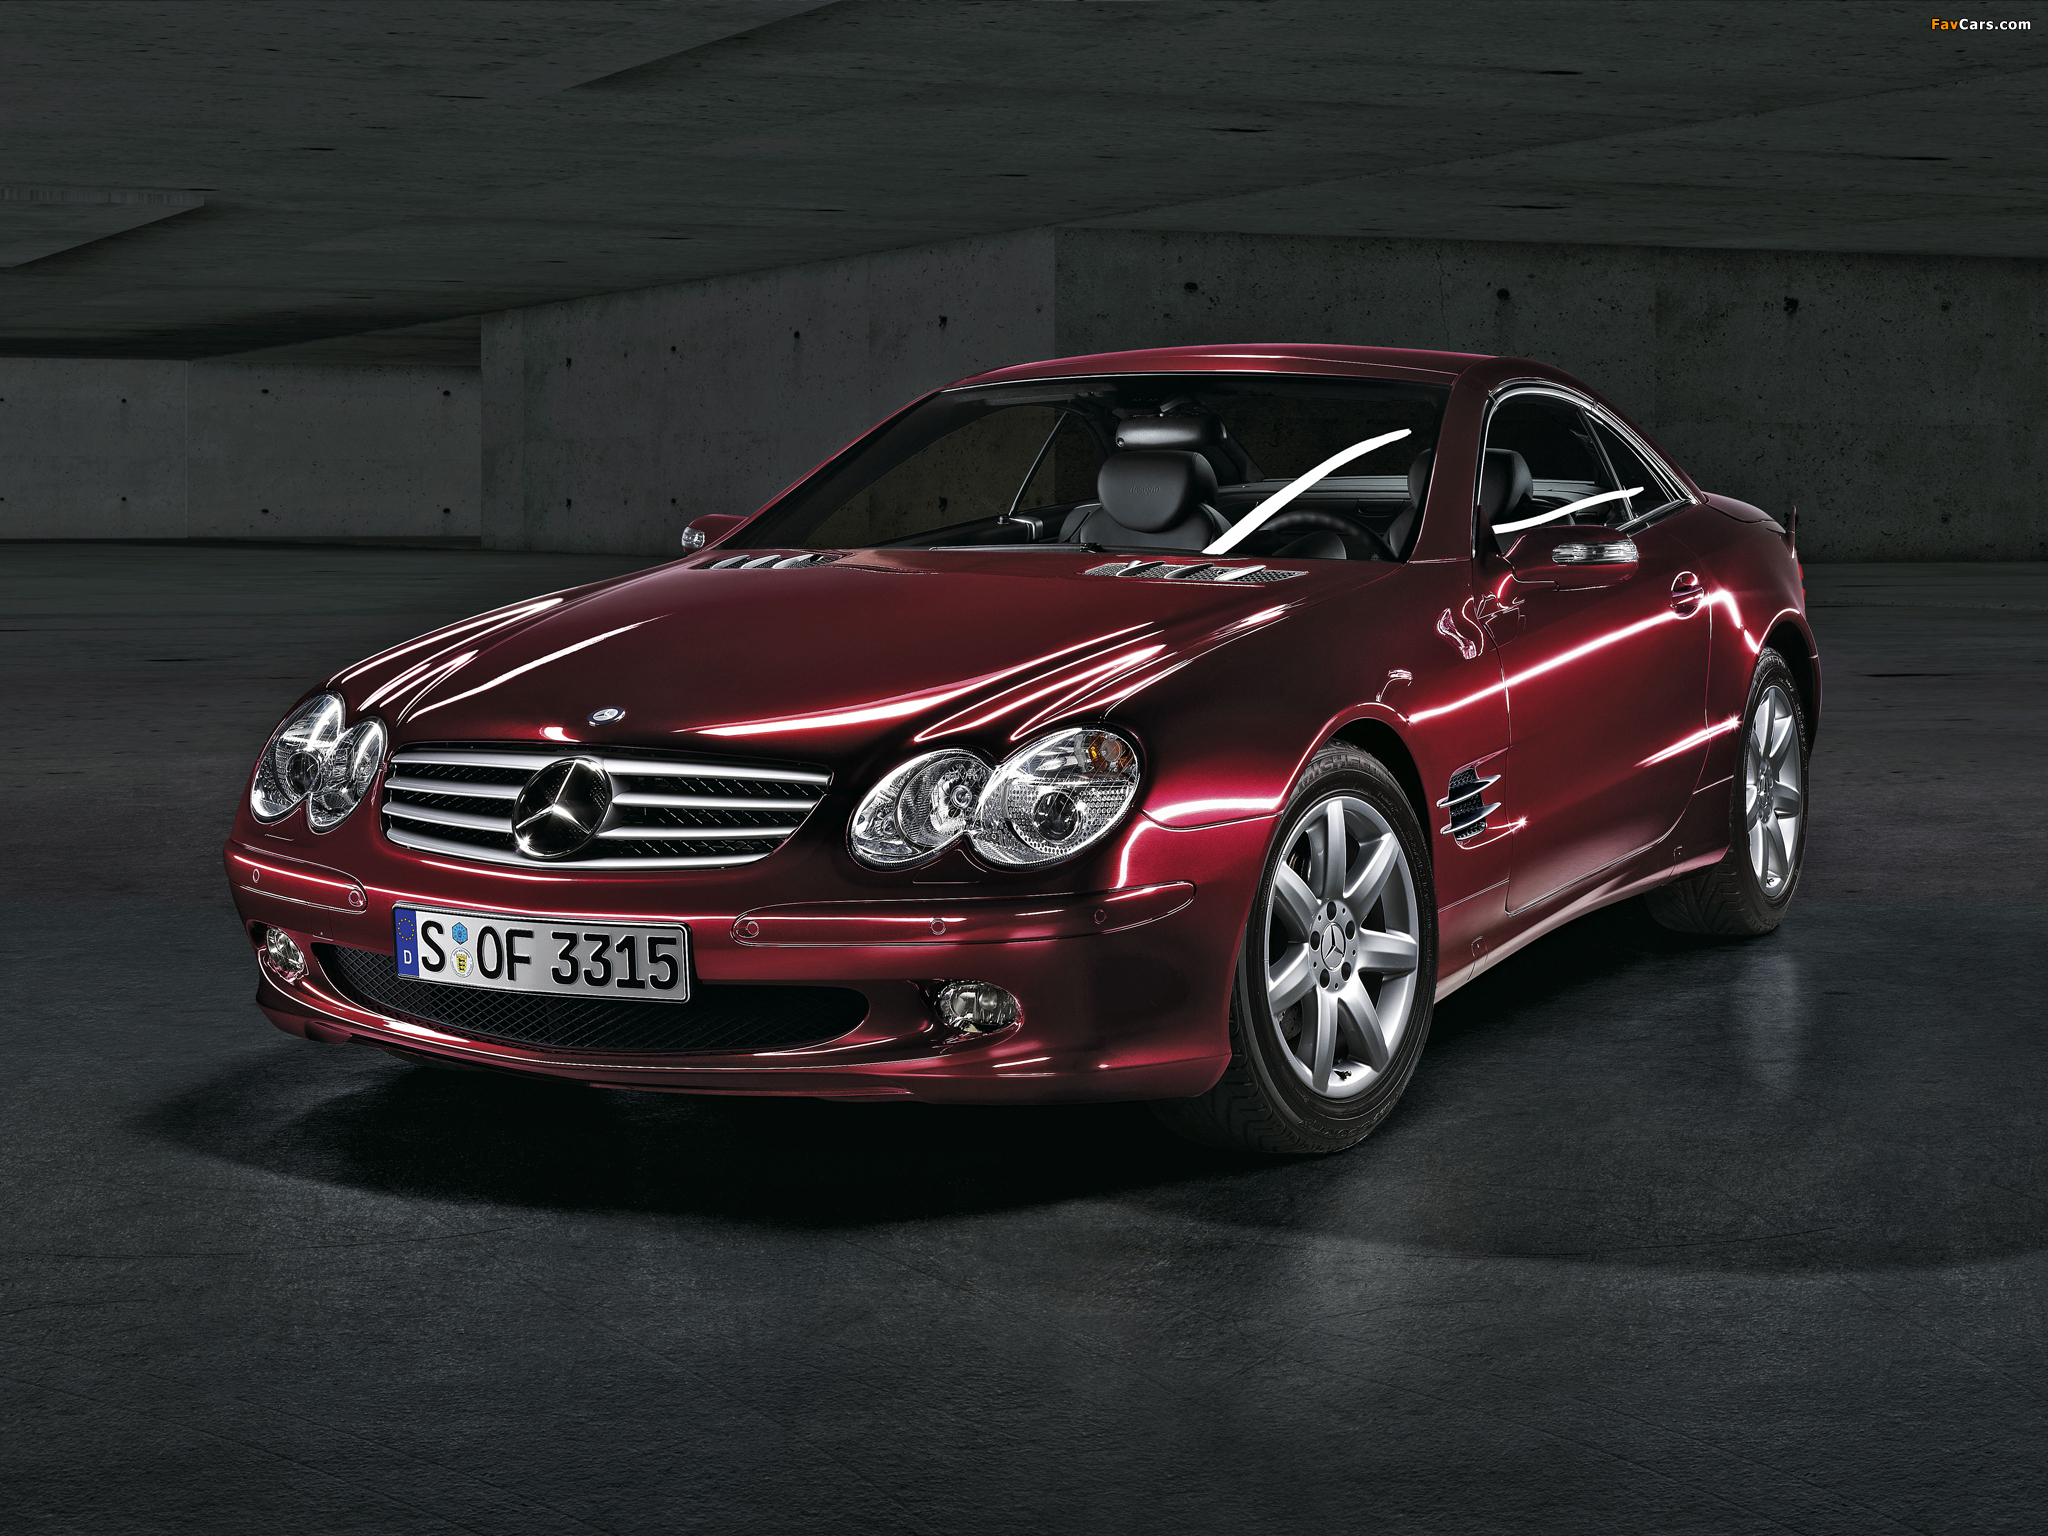 mercedes benz sl 500 r230 2005 08 wallpapers 2048x1536. Black Bedroom Furniture Sets. Home Design Ideas